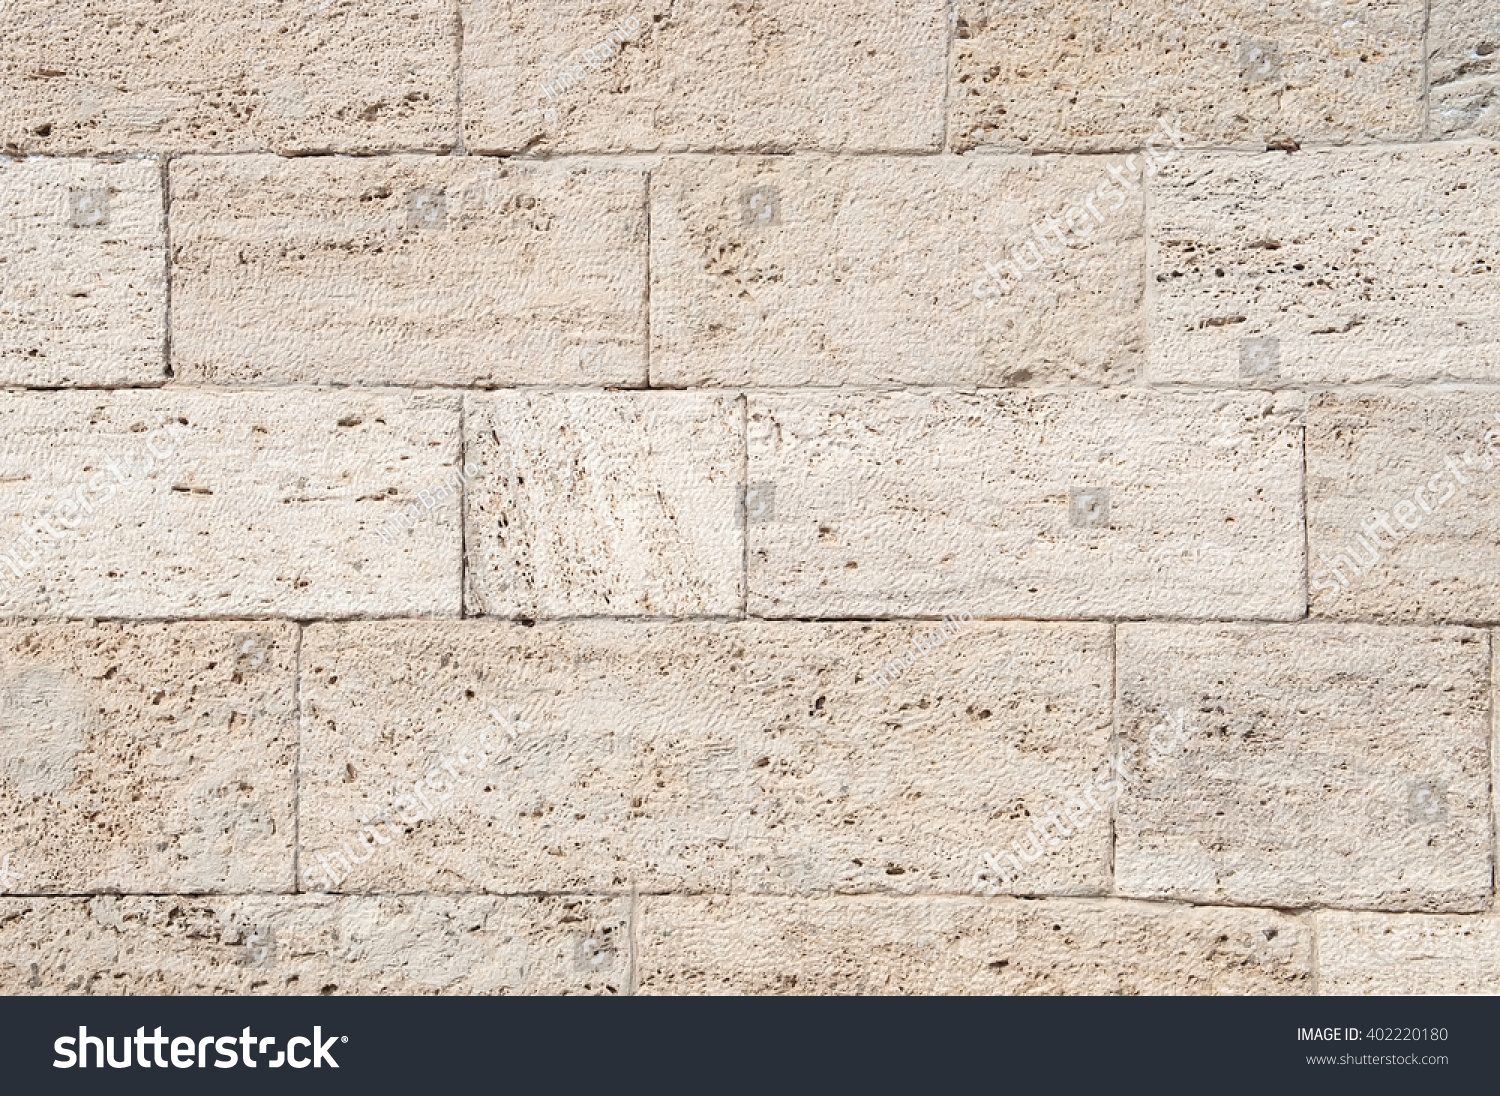 Seamless Texture Brown Stone Stone Tile Stock Photo 402220180